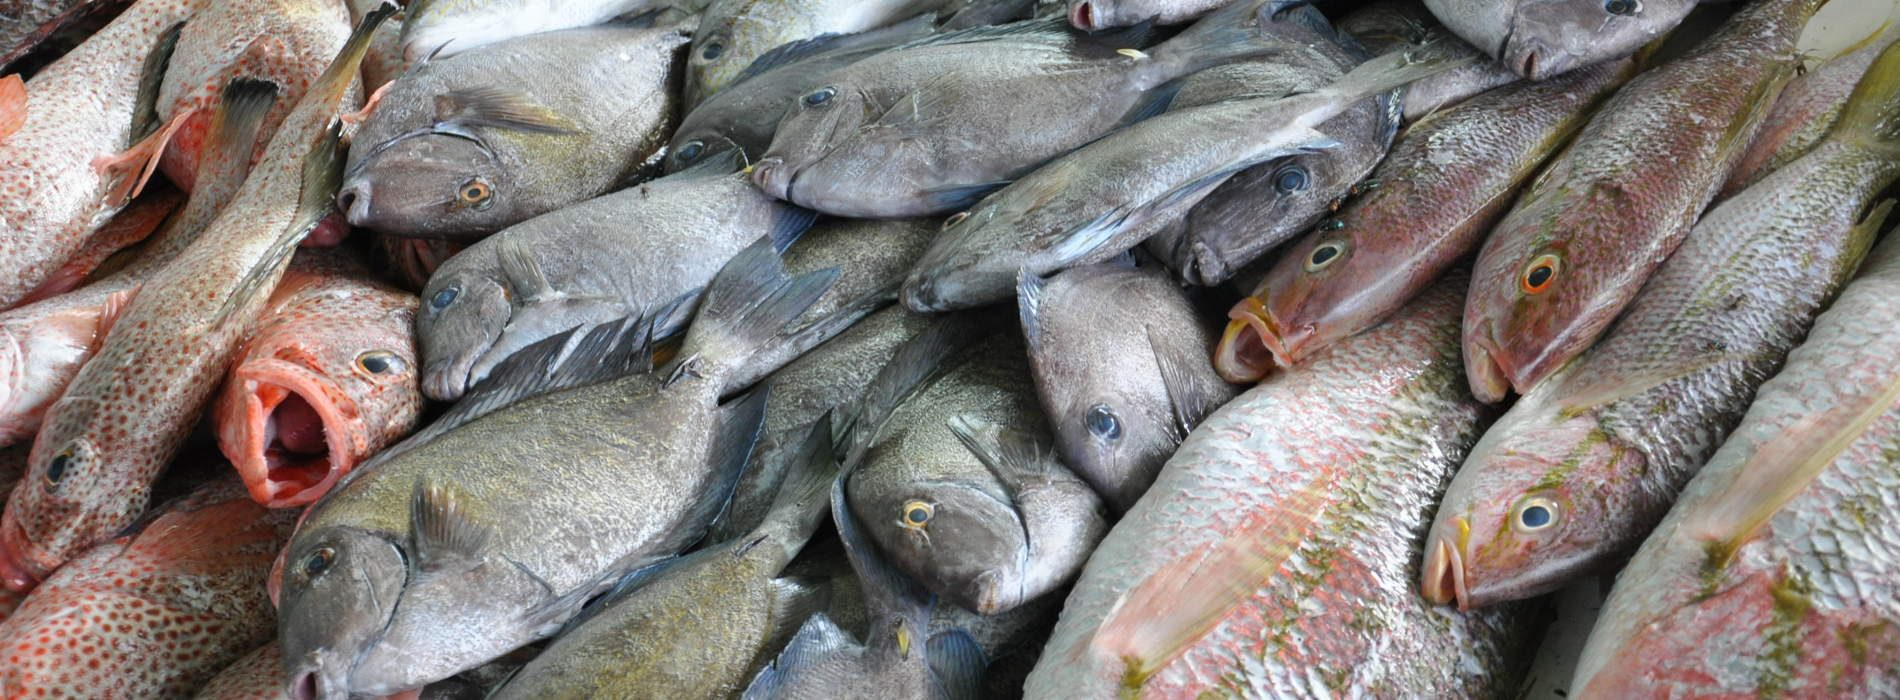 Angola and Argentina study cooperation in the fisheries sector.